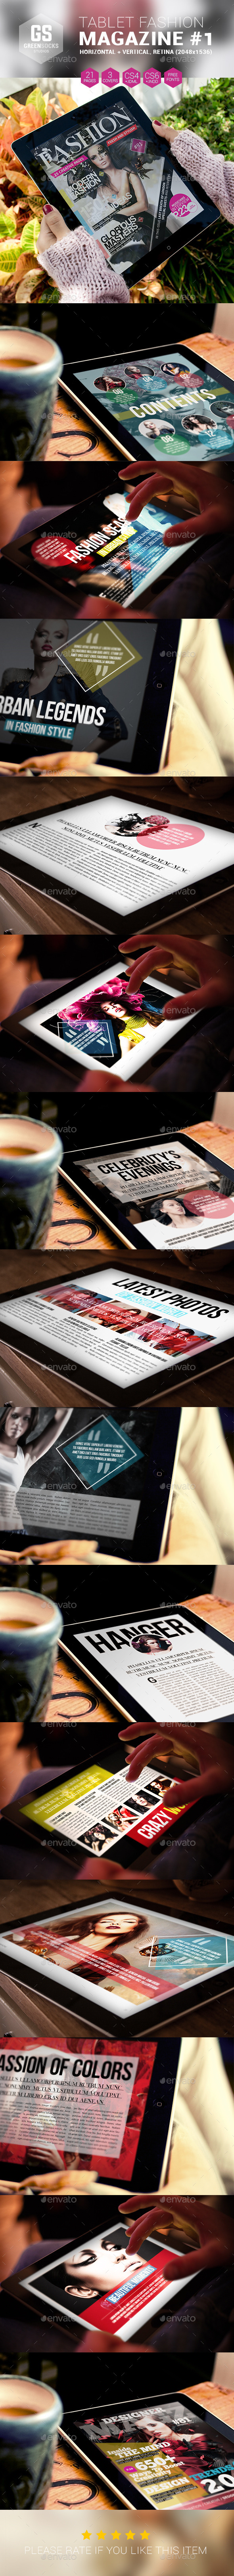 GraphicRiver Tablet Fashion Magazine 9208823